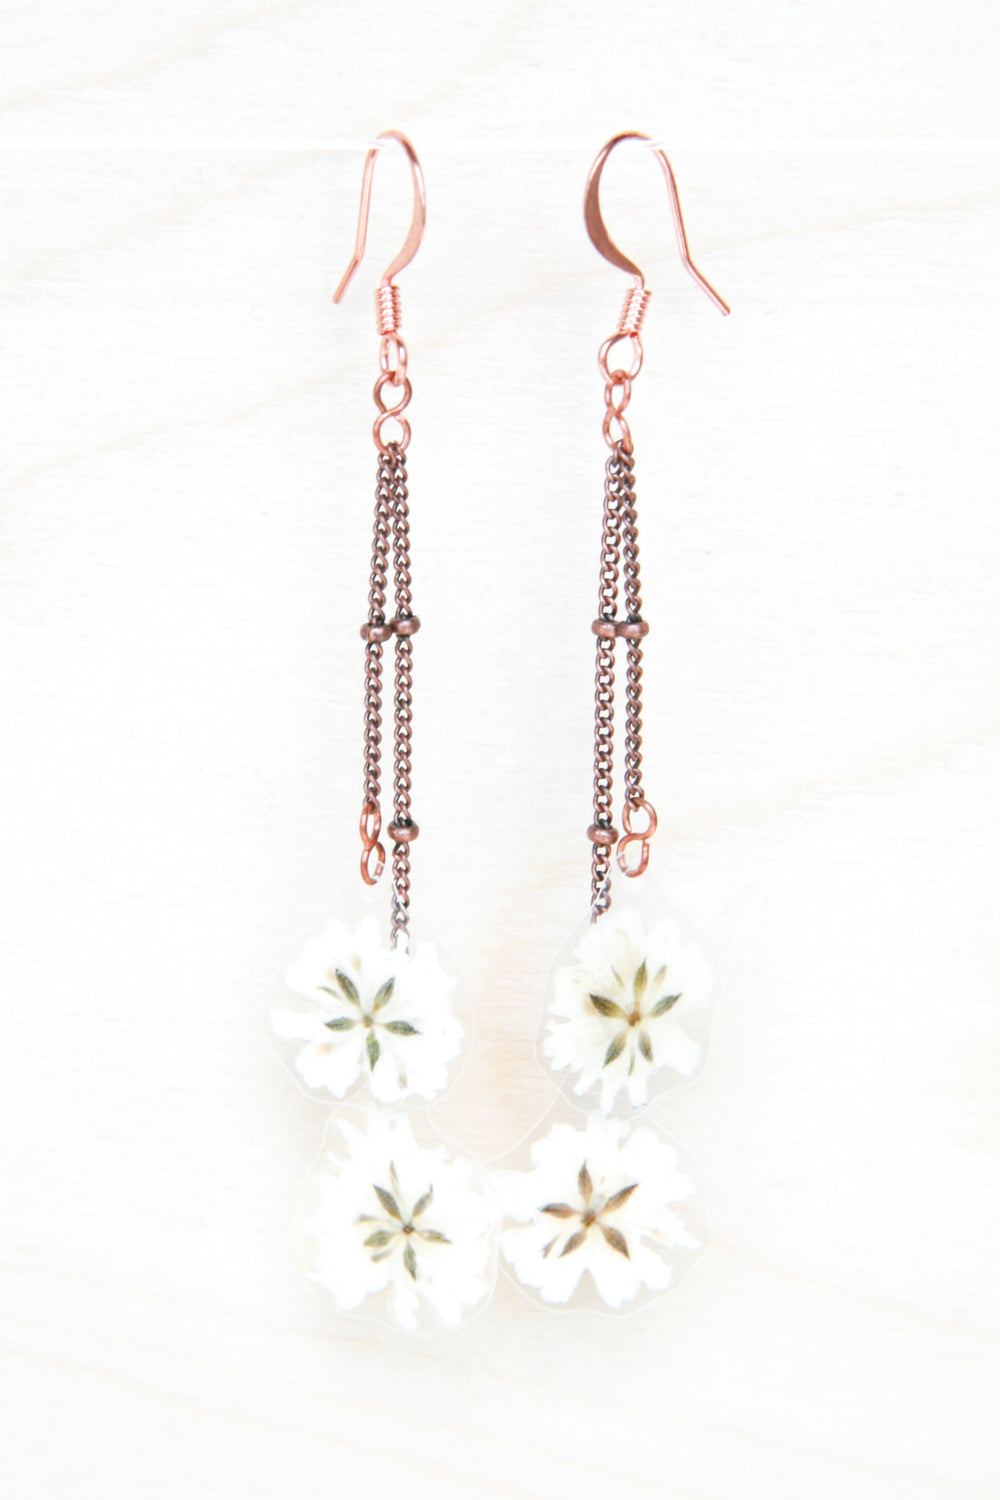 Baby's Breath Pressed Flower Earrings